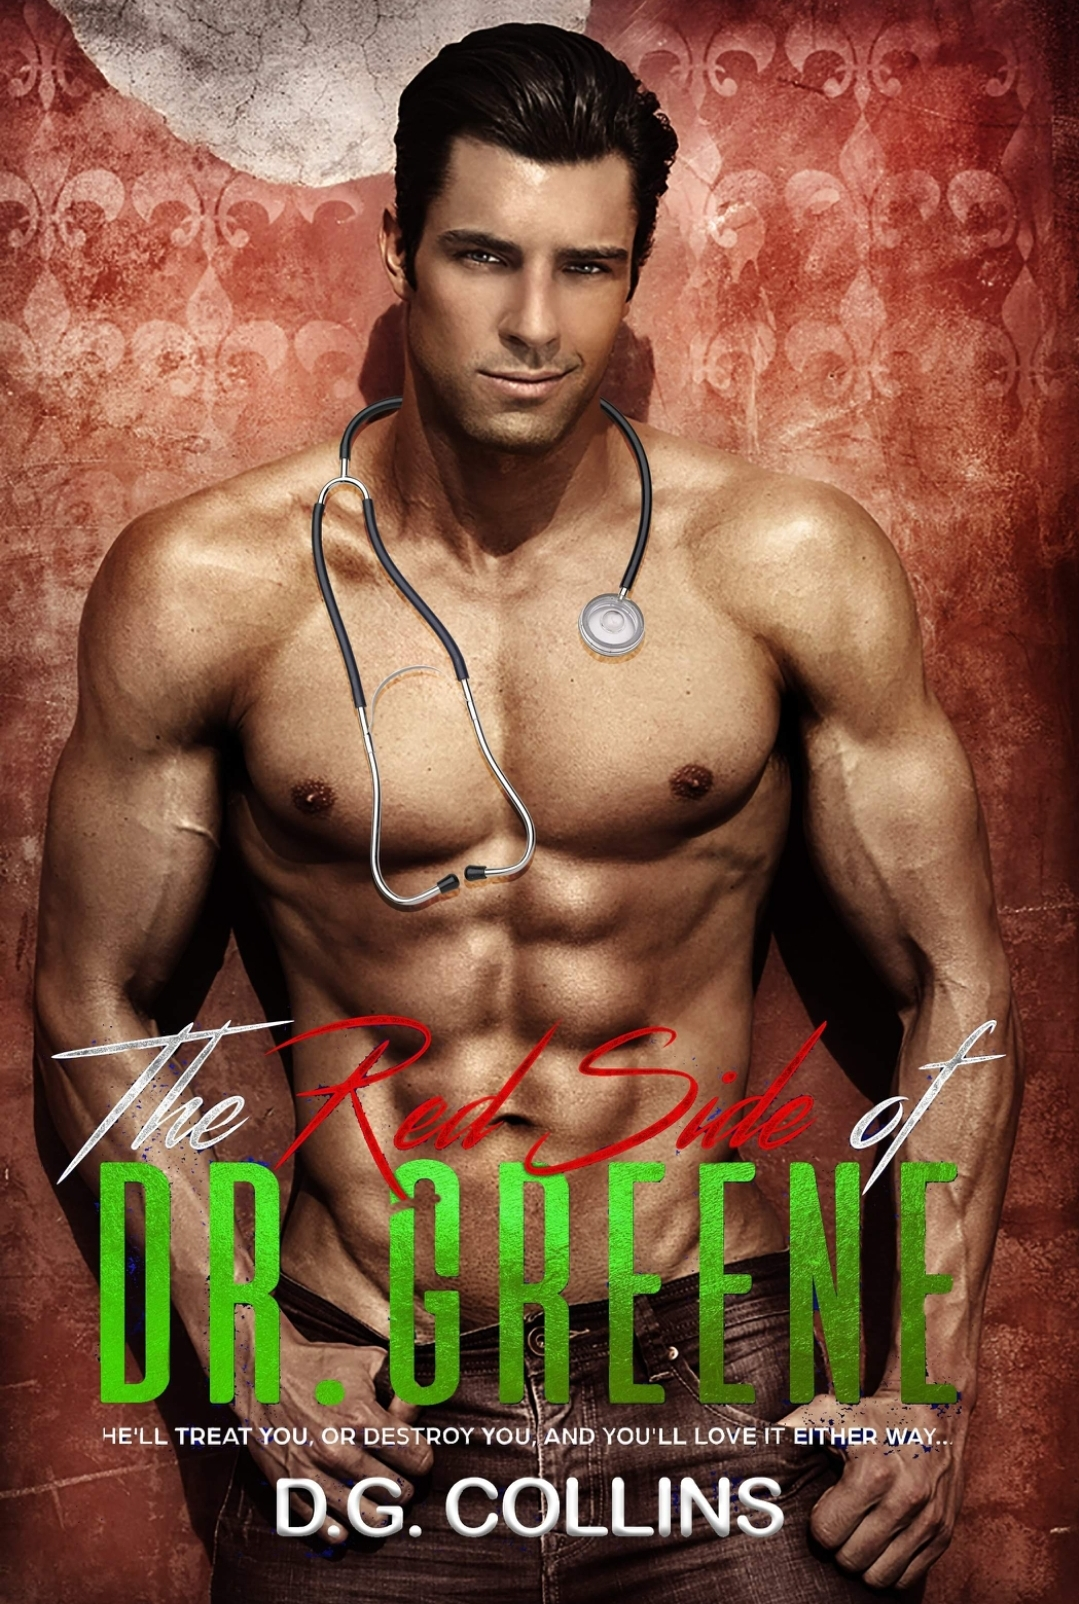 The Red Side of Dr. Greene: He'll treat you, or destroy you, and you'll love it either way